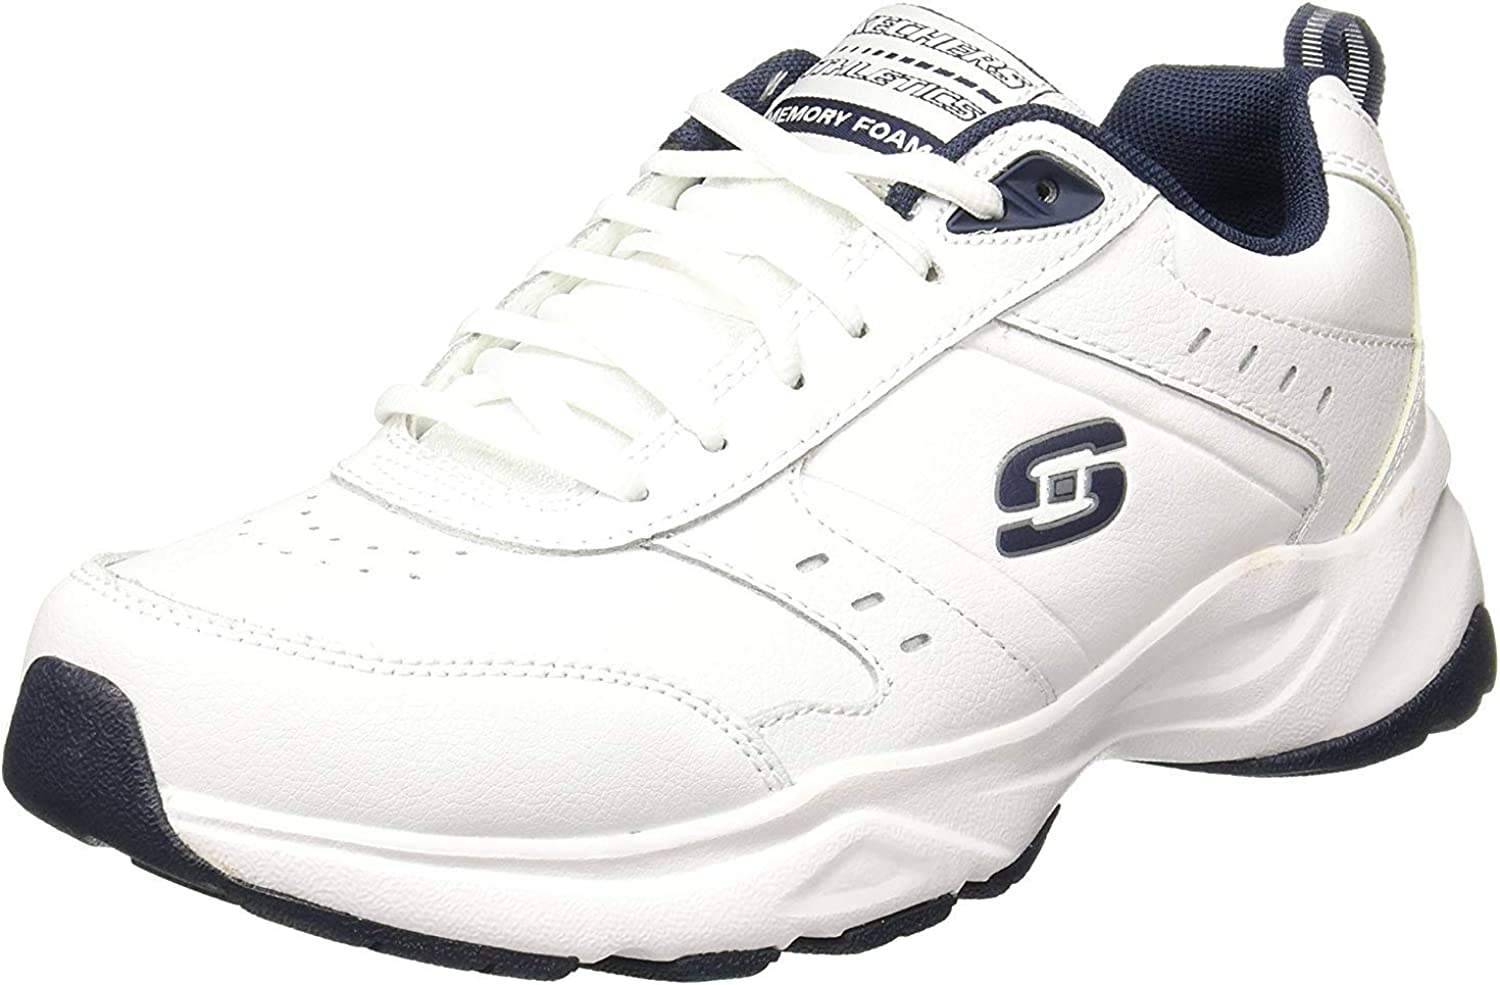 Skechers Mens Haniger Training Sneaker